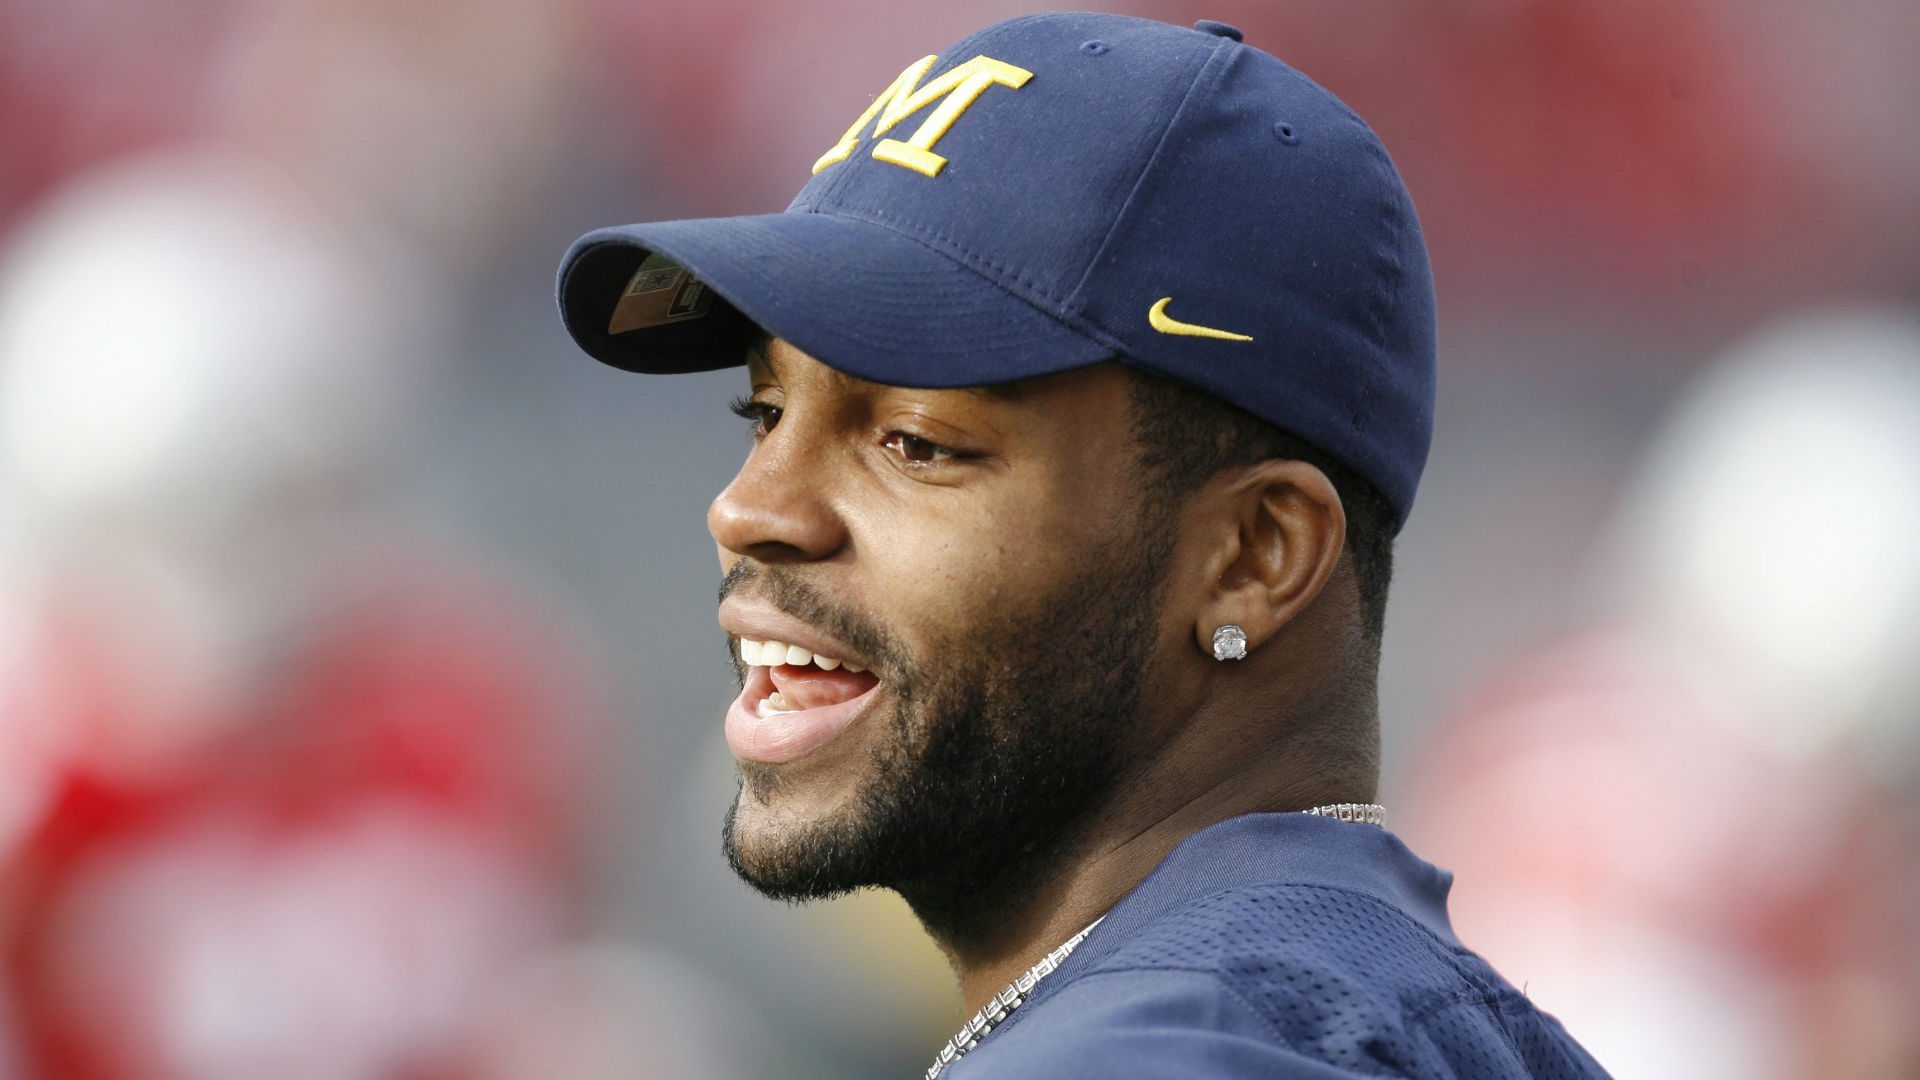 Big Ten Network suspends former Cleveland Browns WR Braylon Edwards